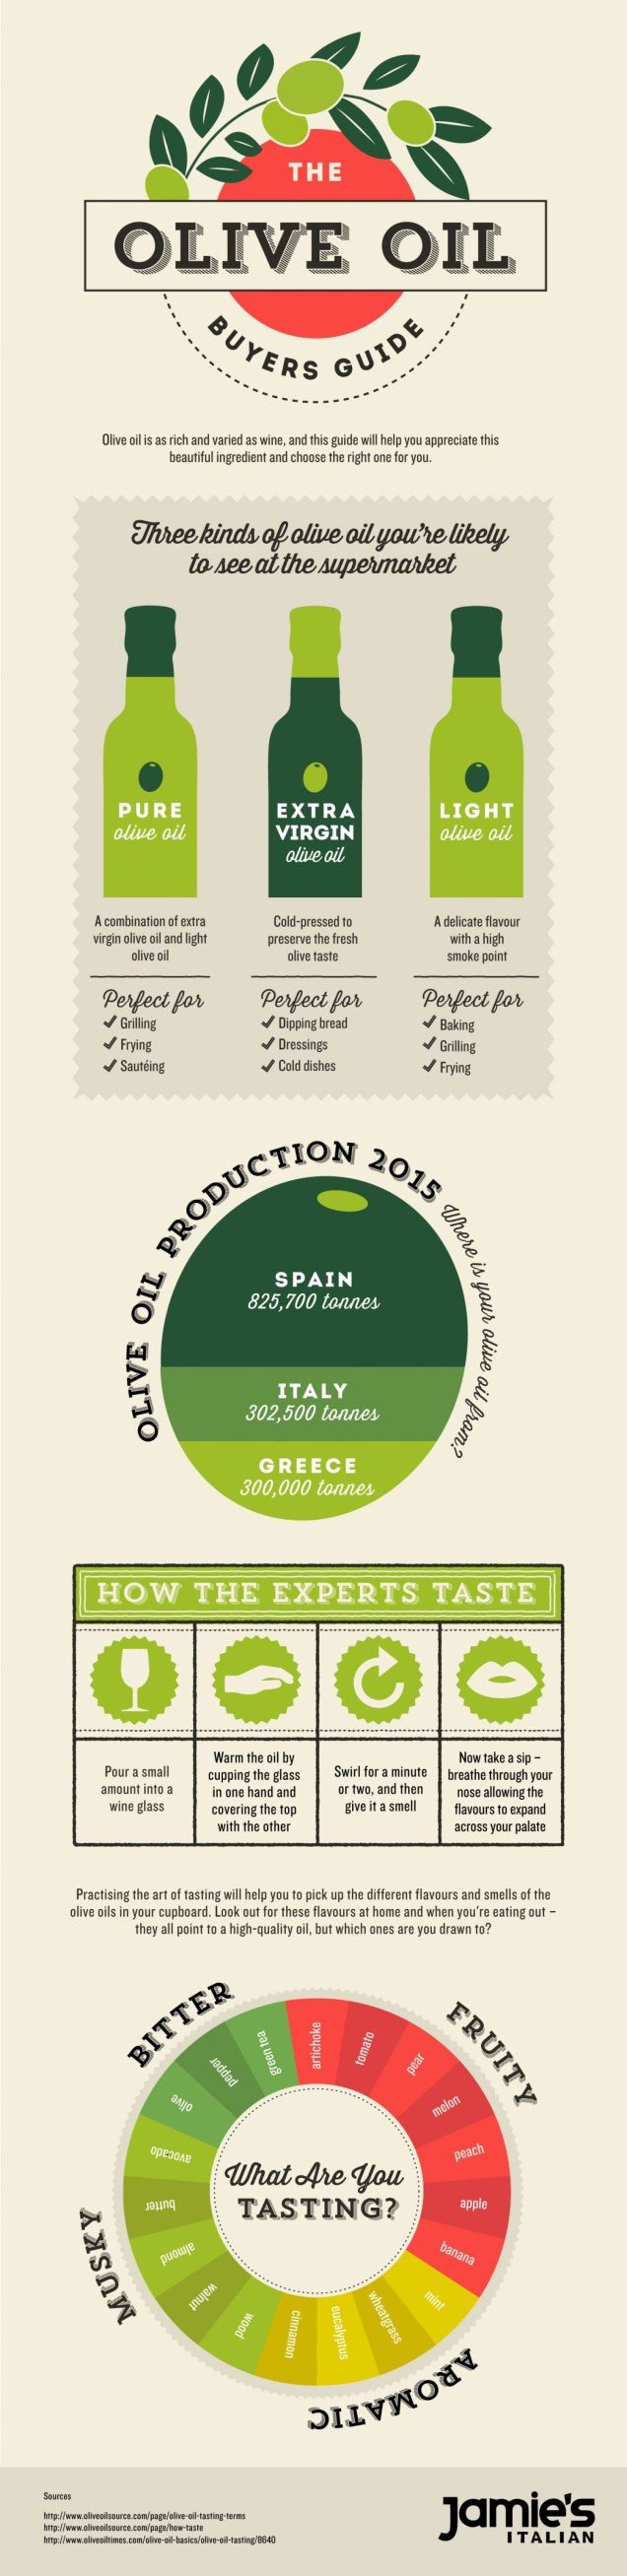 Jamie's Italian - the buyer's guide to olive oil